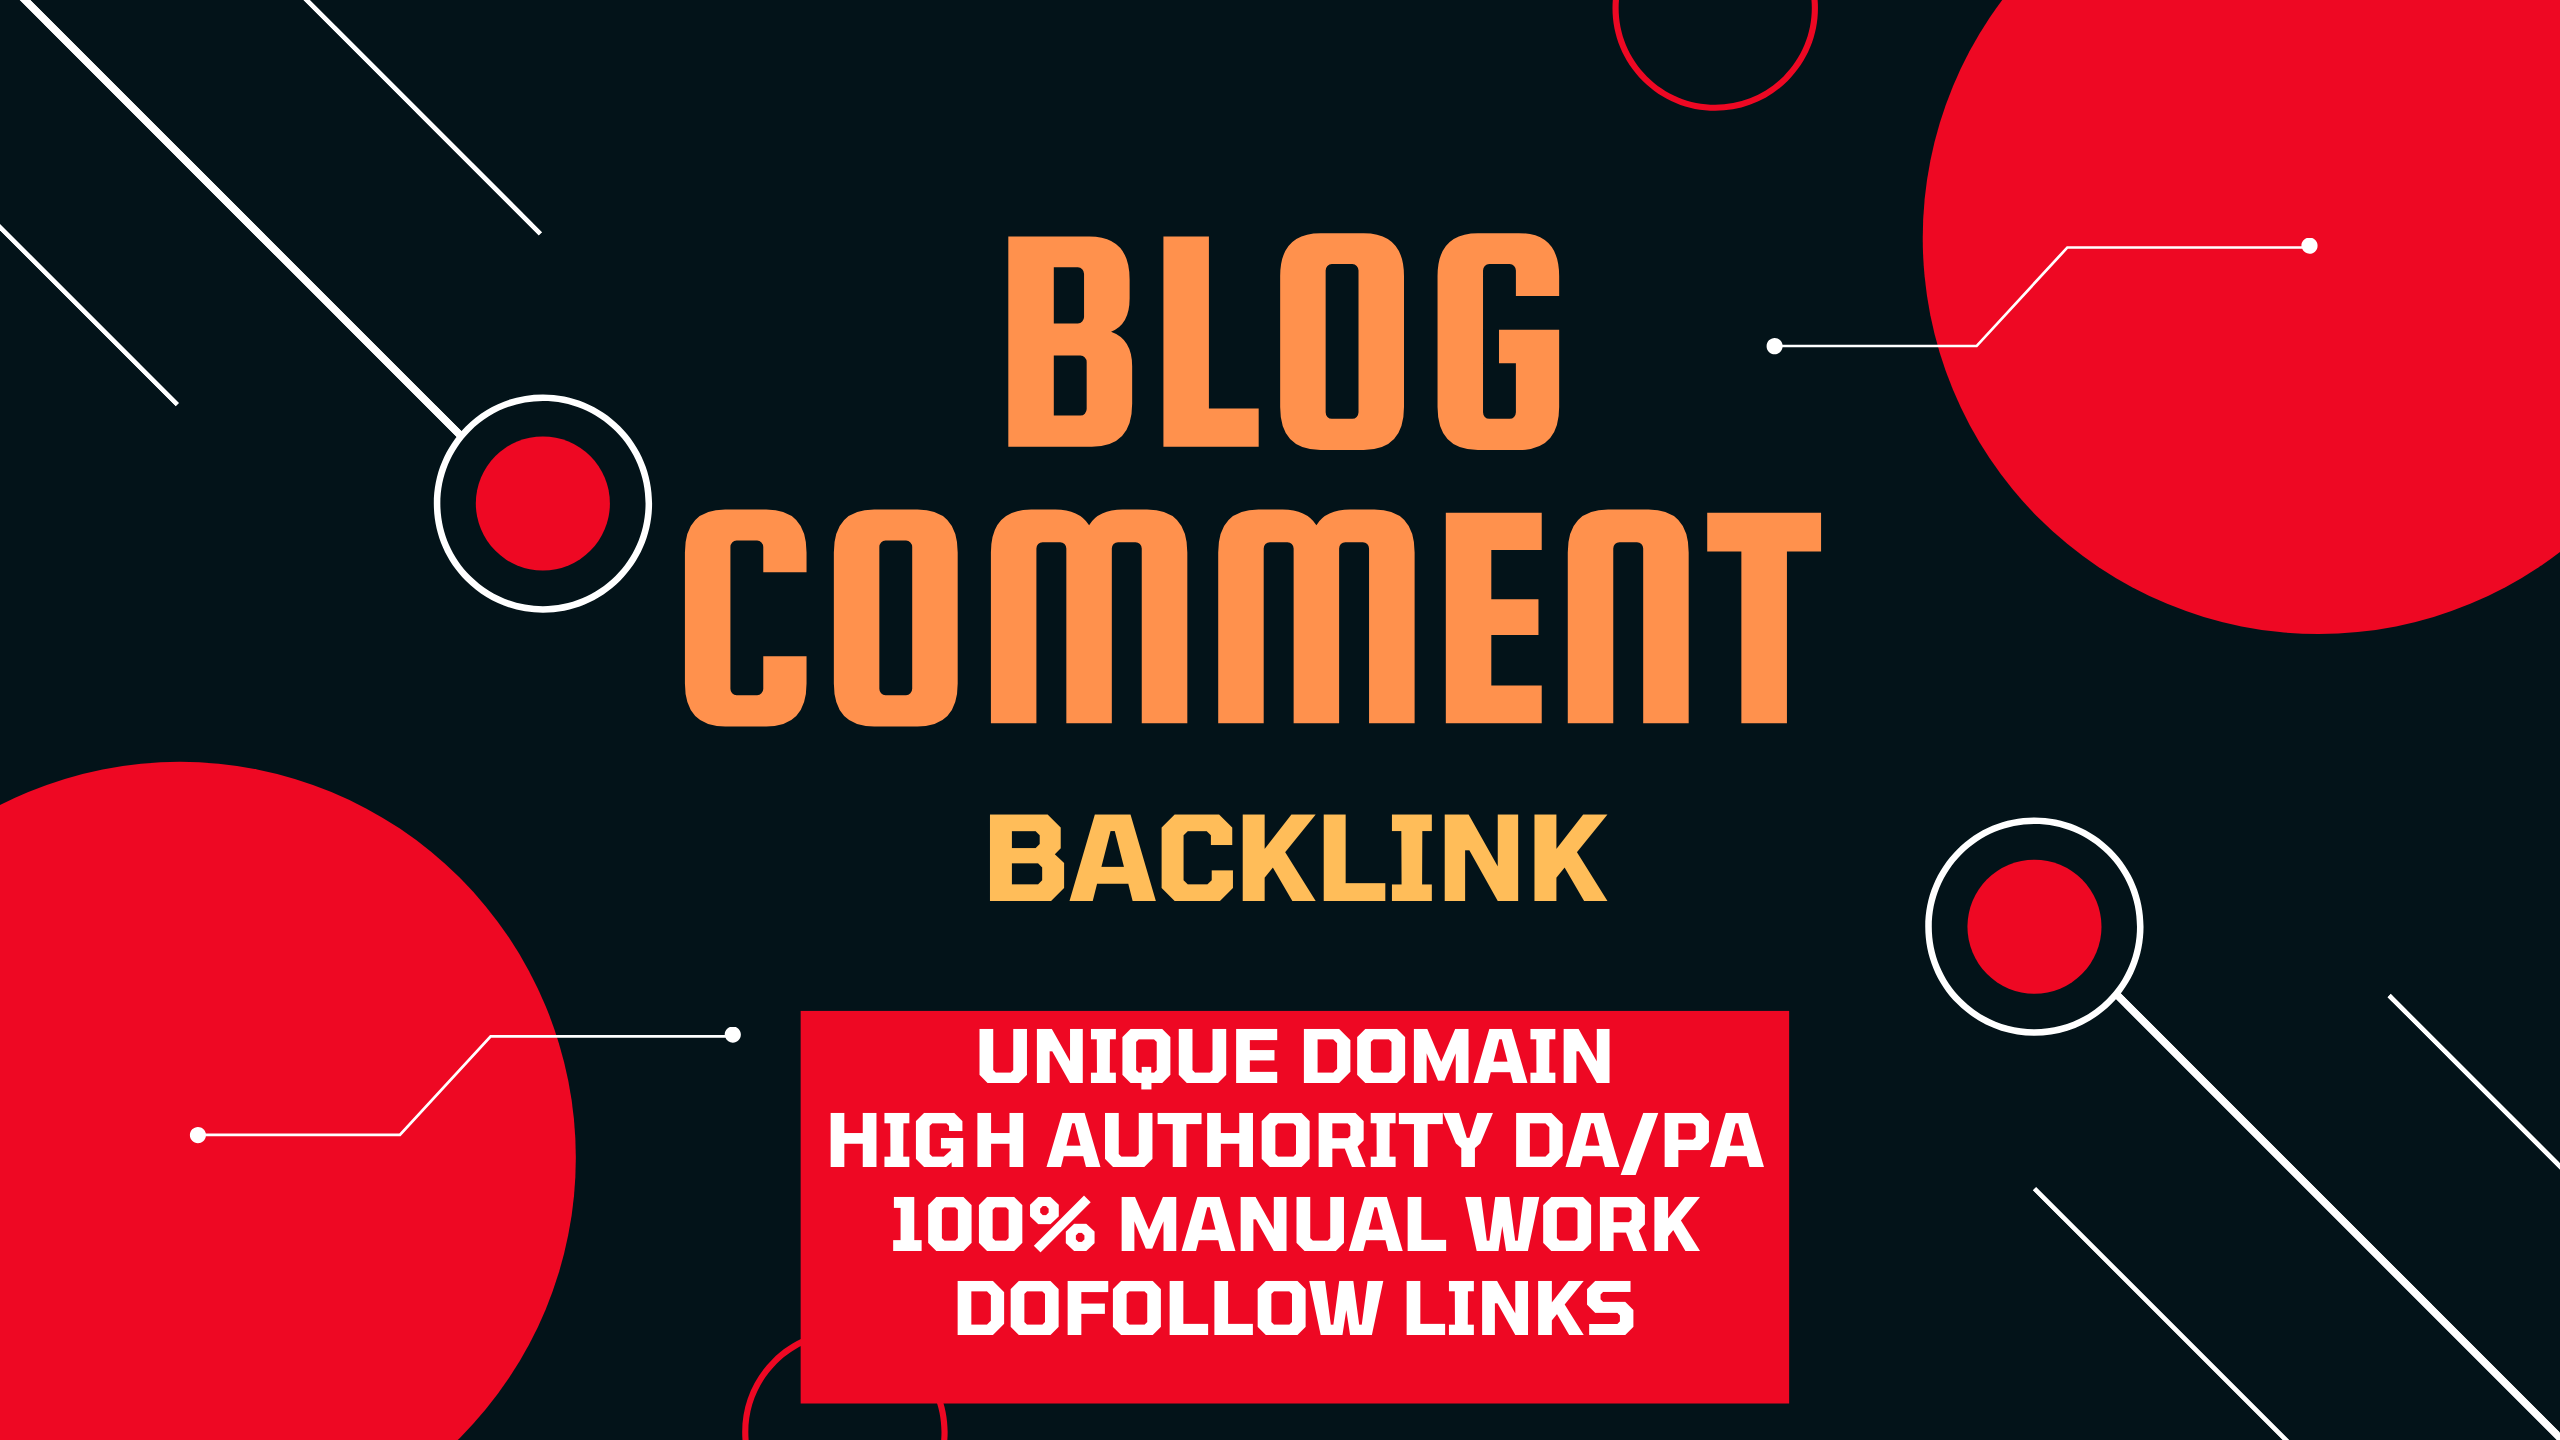 I will manually create 100 Dofollow blog comments with high DA PA.